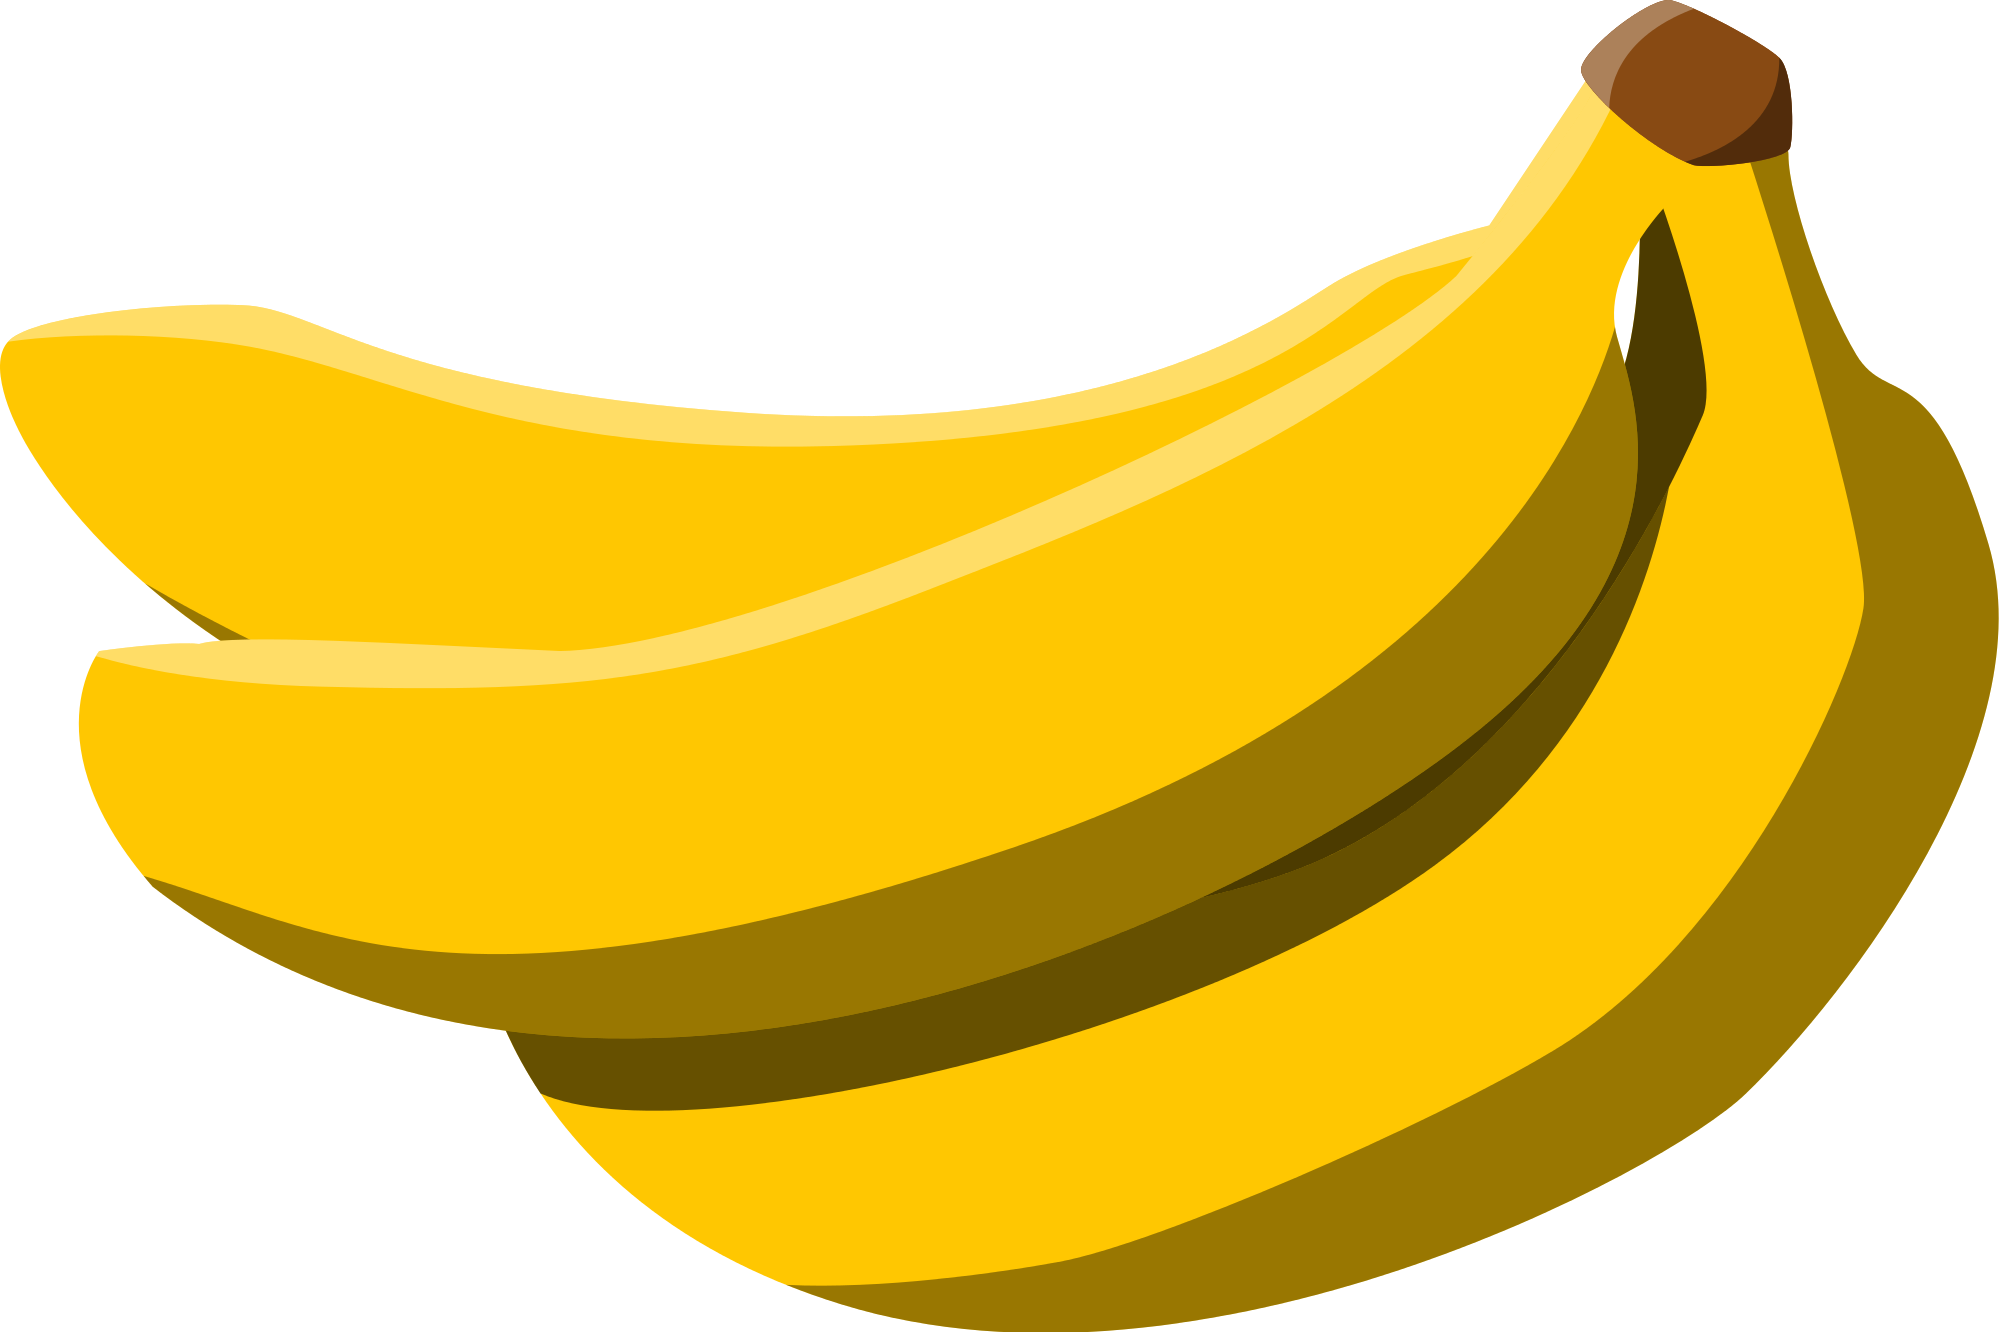 banana svg vector